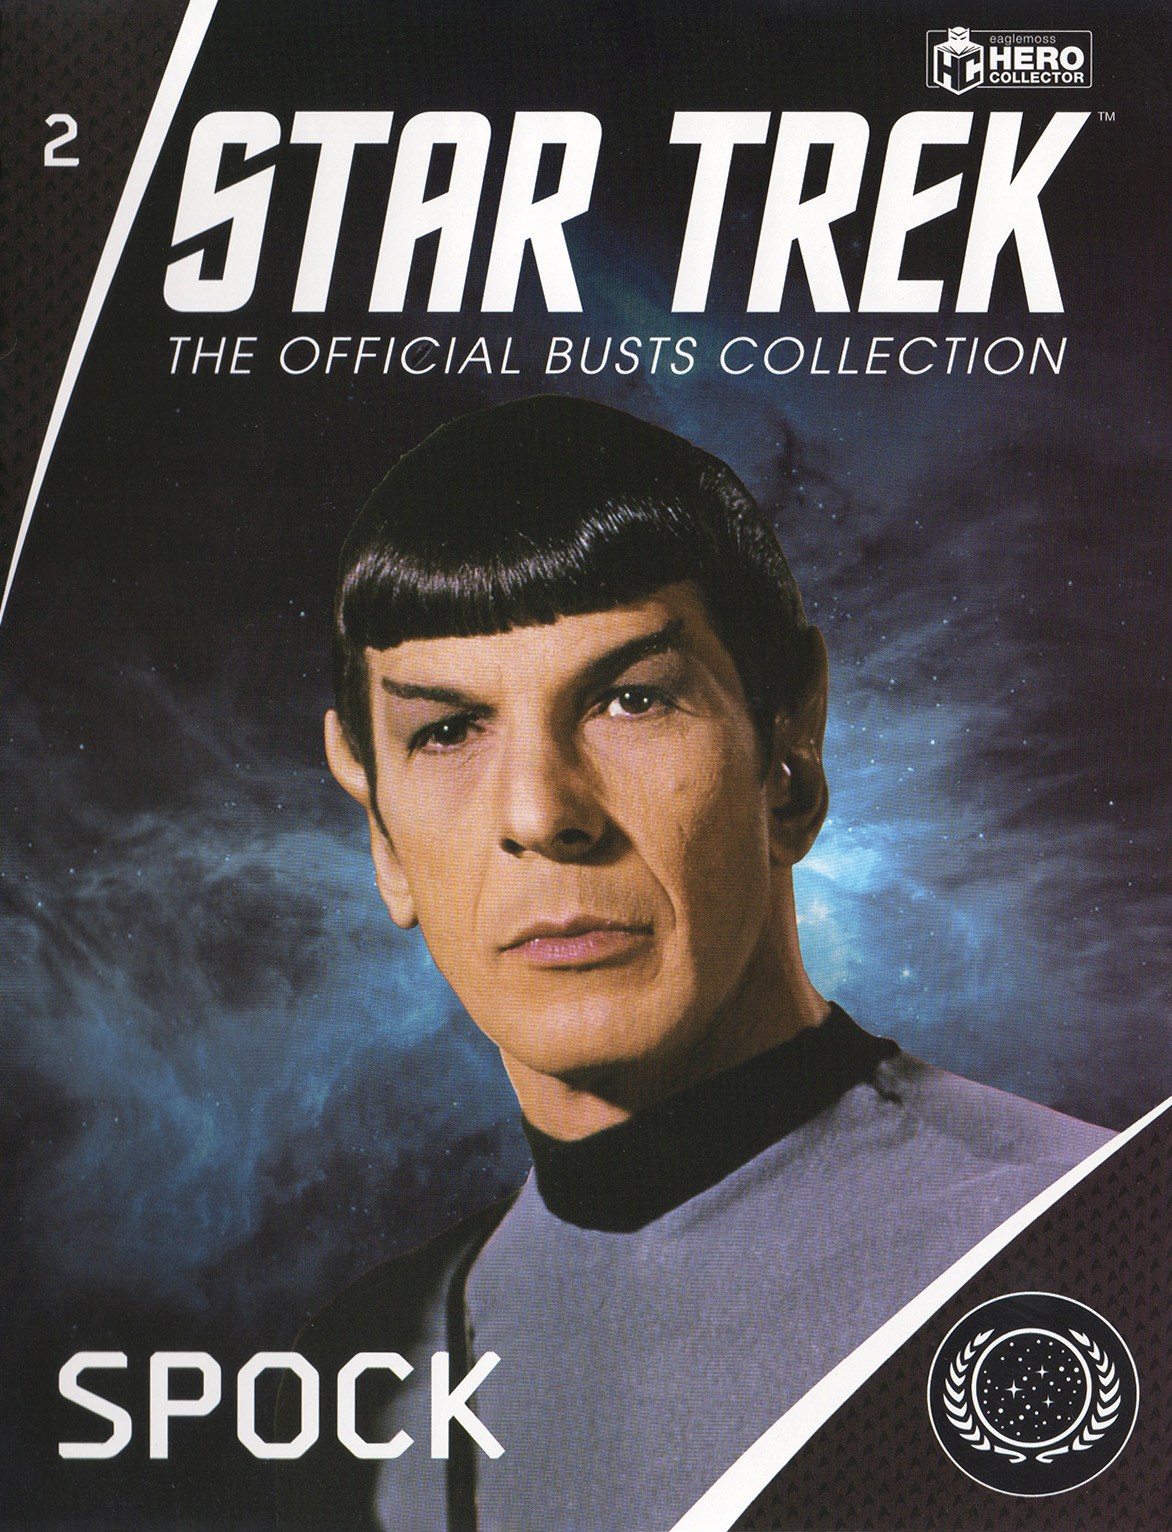 Star Trek: The Official Busts Collection #2.jpg